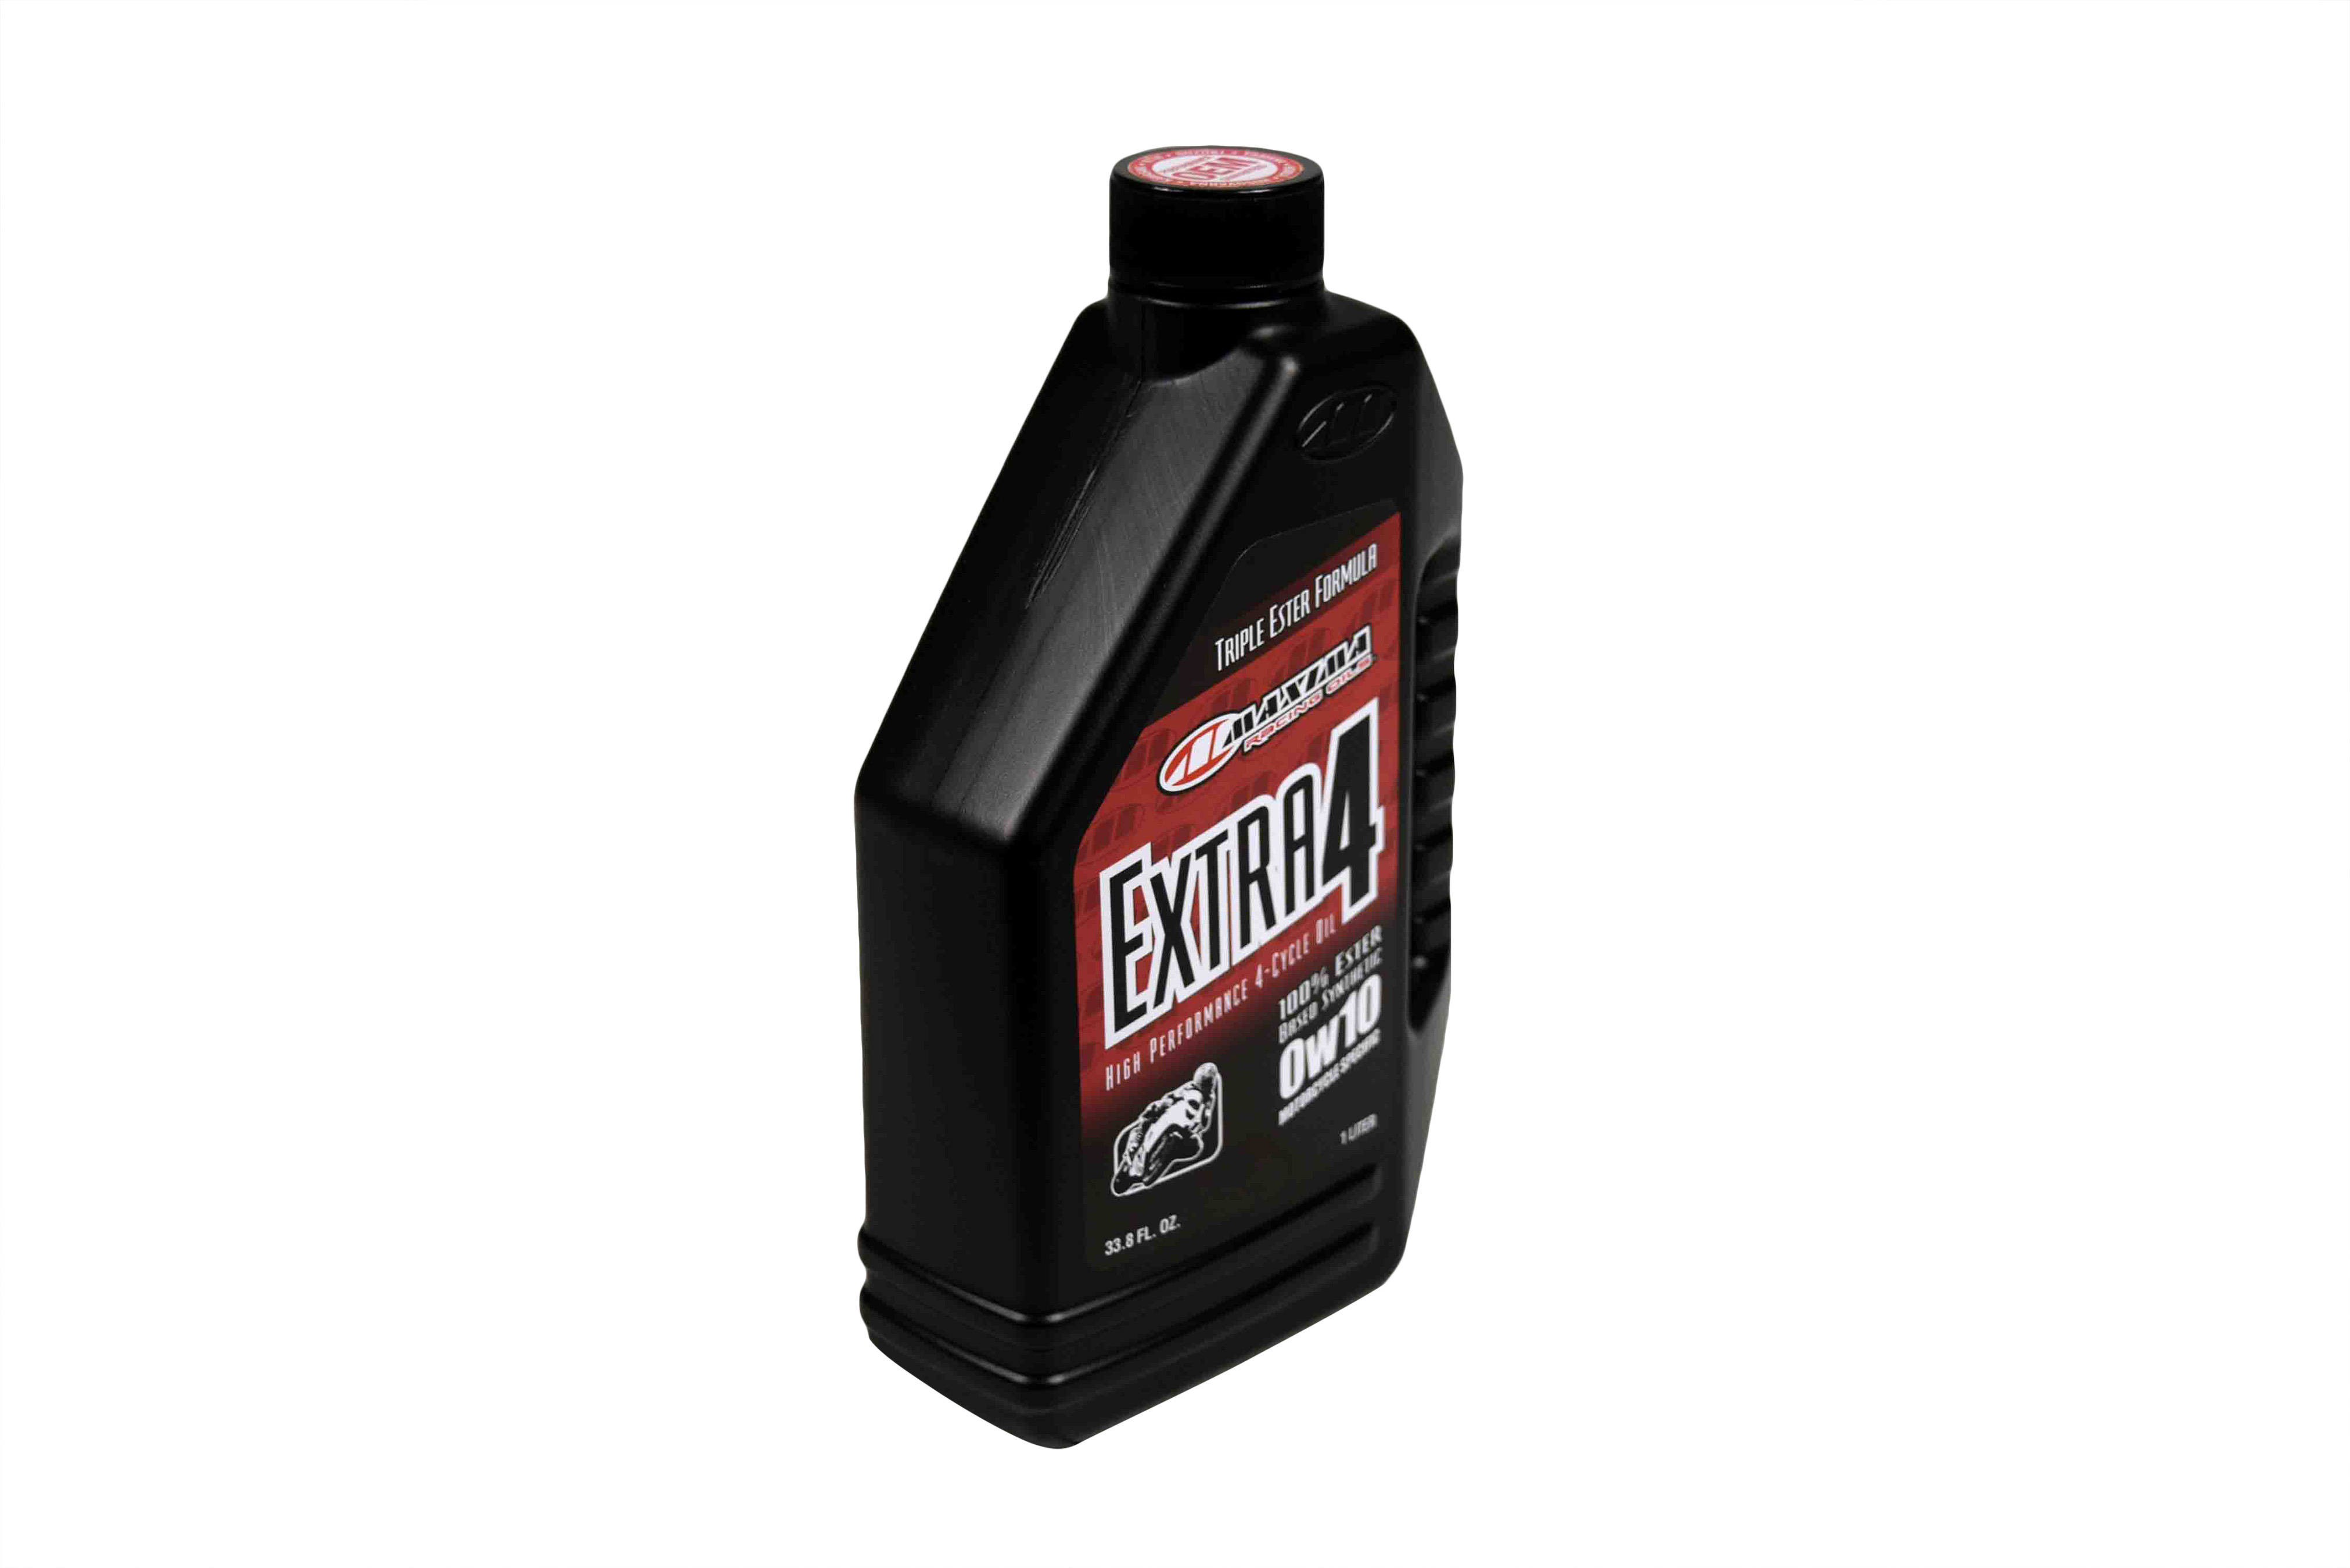 Maxima-30-13901-Extra4-0W-10-Synthetic-4T-Motorcycle-Engine-Oil-1-Liter-Bottle-image-2